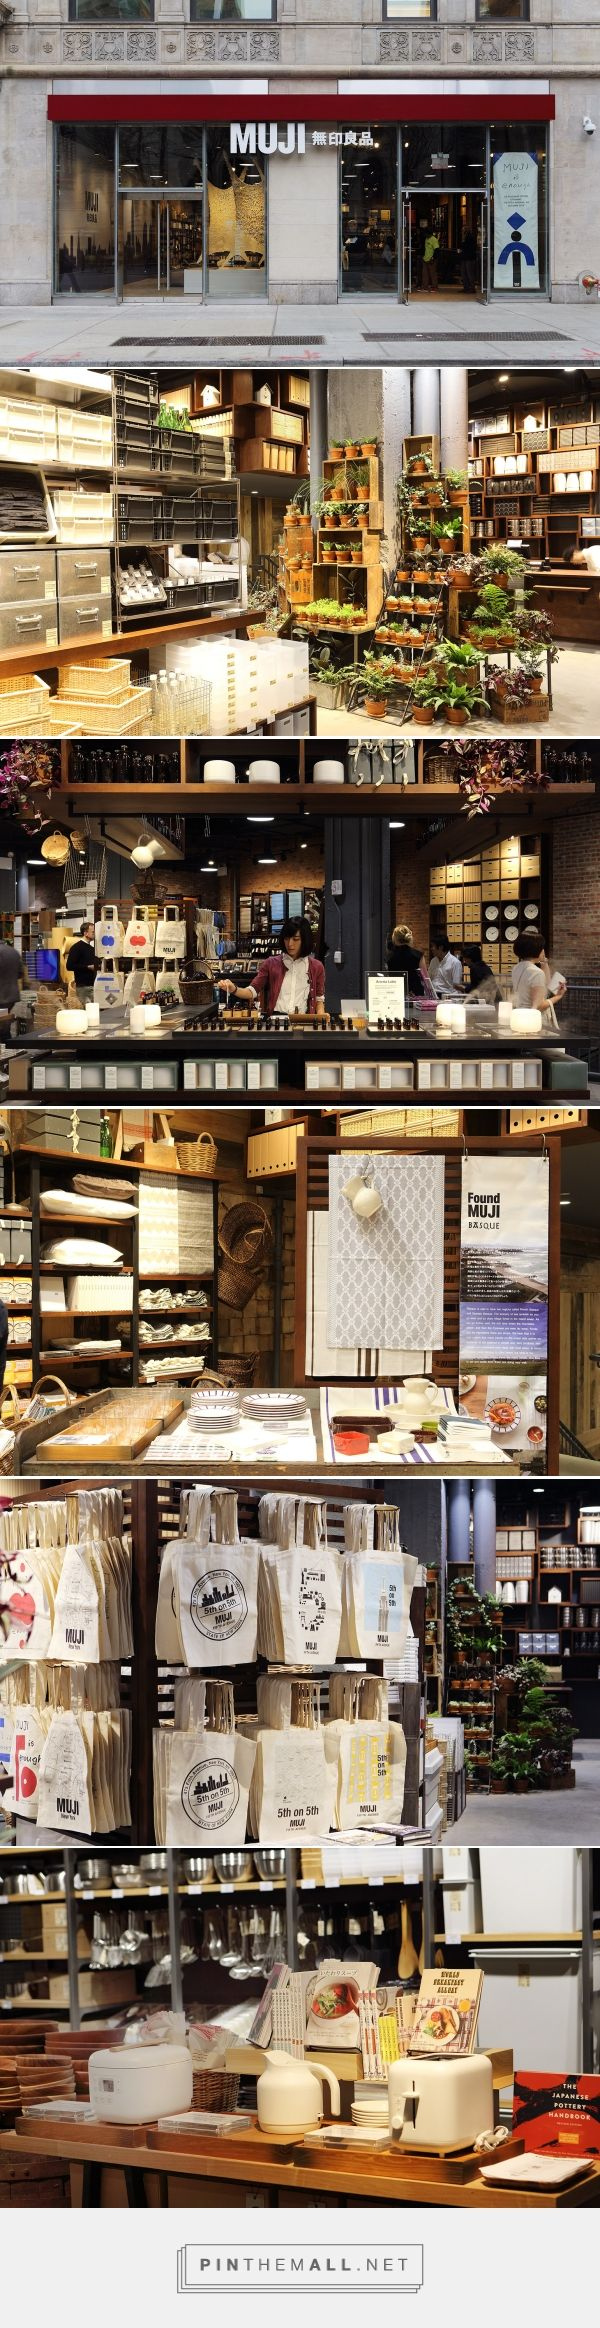 Flagship on Fifth: Muji opens mammoth NYC store   Design   Wallpaper* Magazine